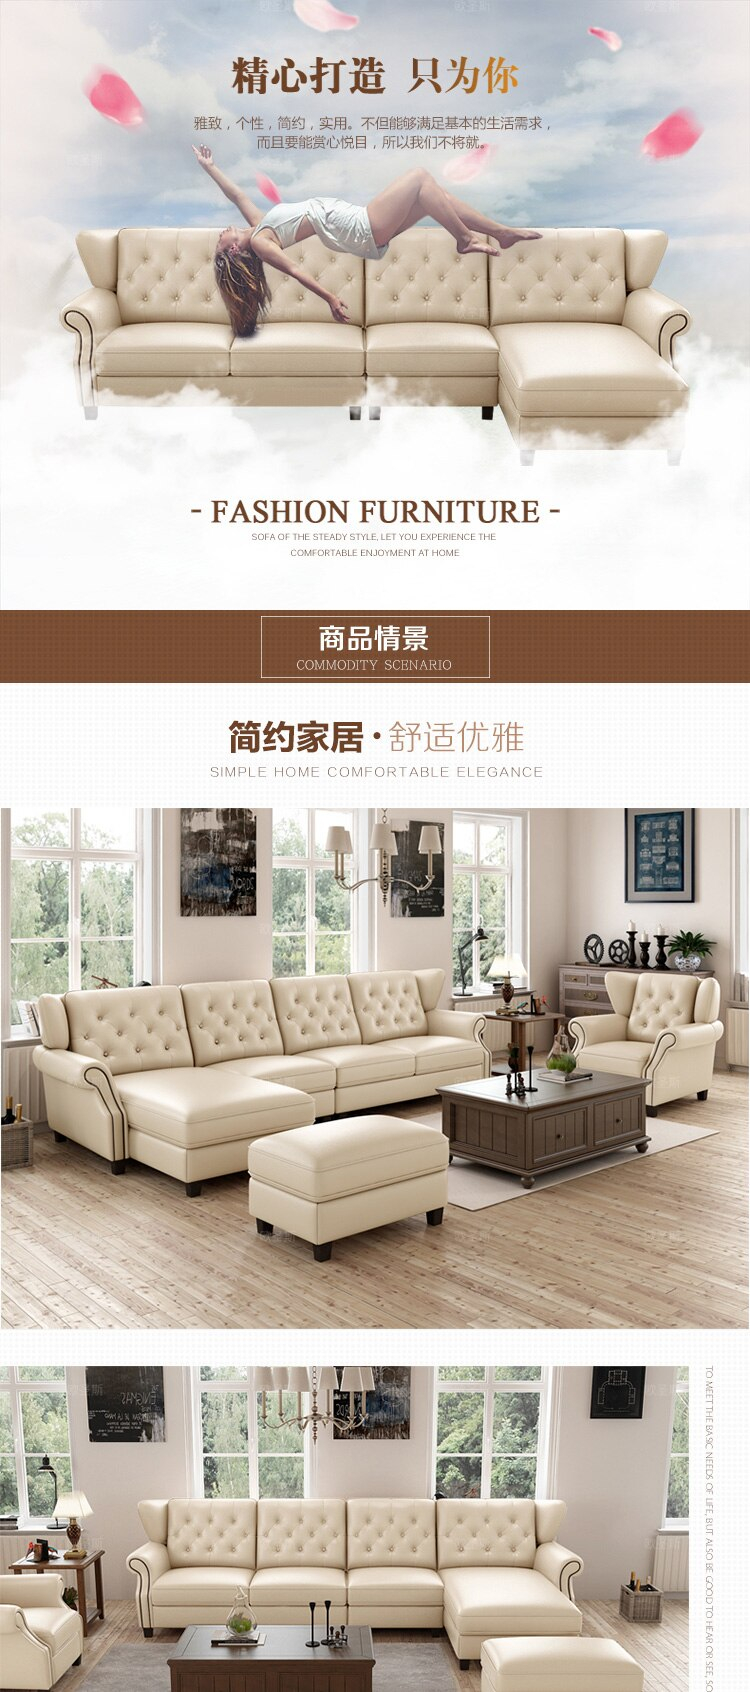 2019 Light Coffee American Style New Designs 2019 Sectional Livingroom Furniture L Shaped Corner Victorian Leather Sofa Set F80l intended for Victorian Style Living Room Set